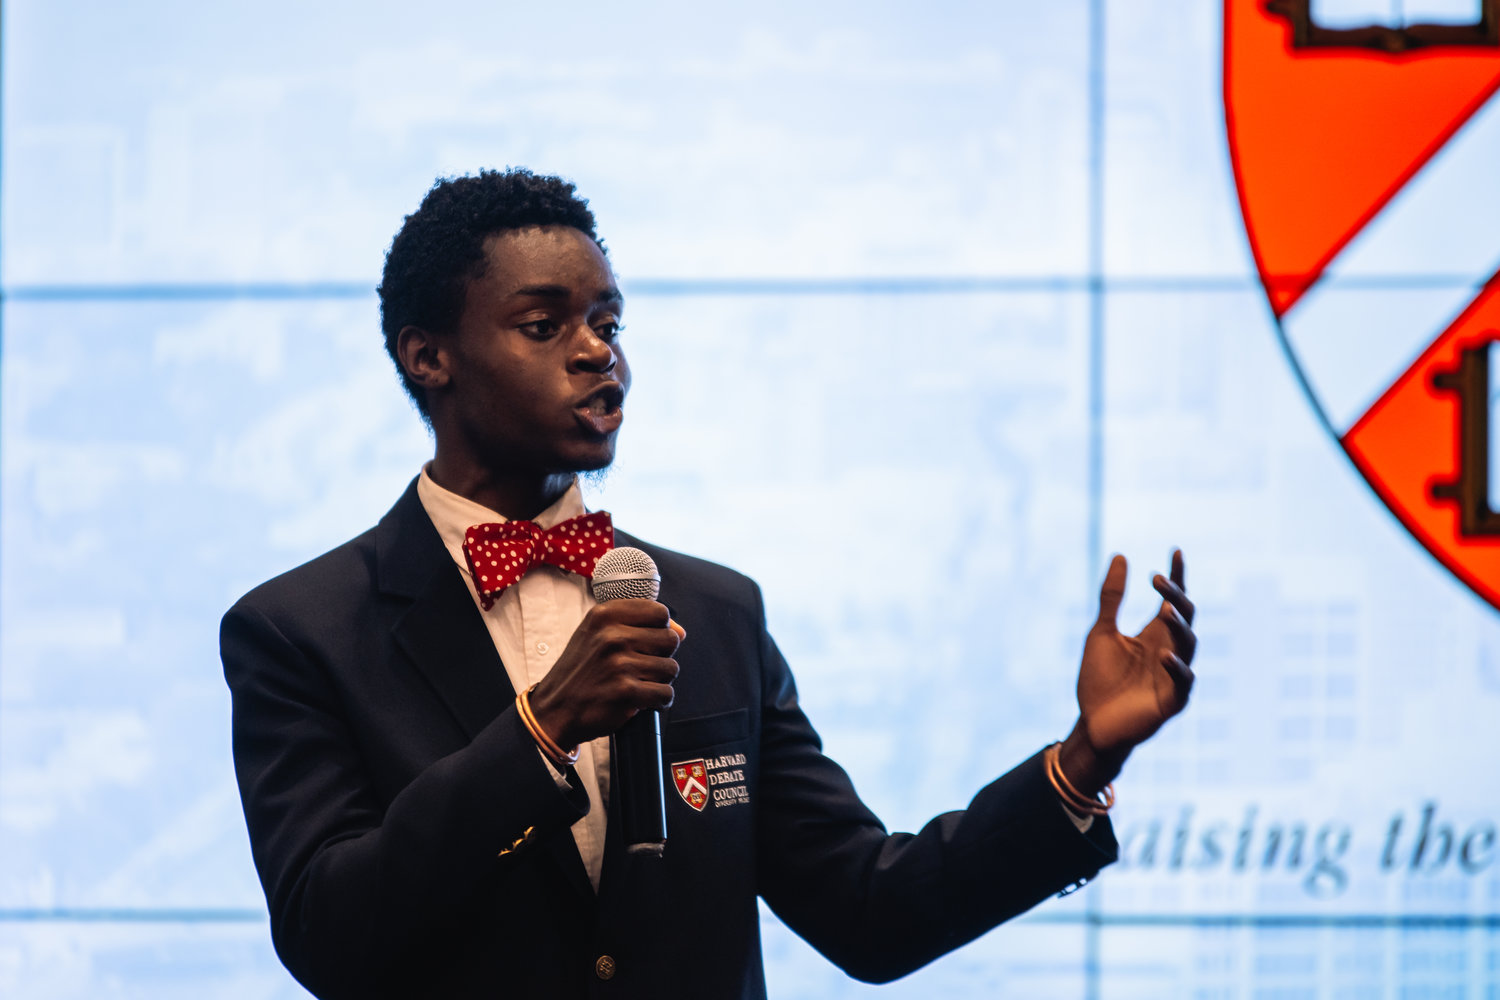 (Pictured: Osazi speaking at a Harvard Diversity Project fundraiser in Atlanta, GA.)